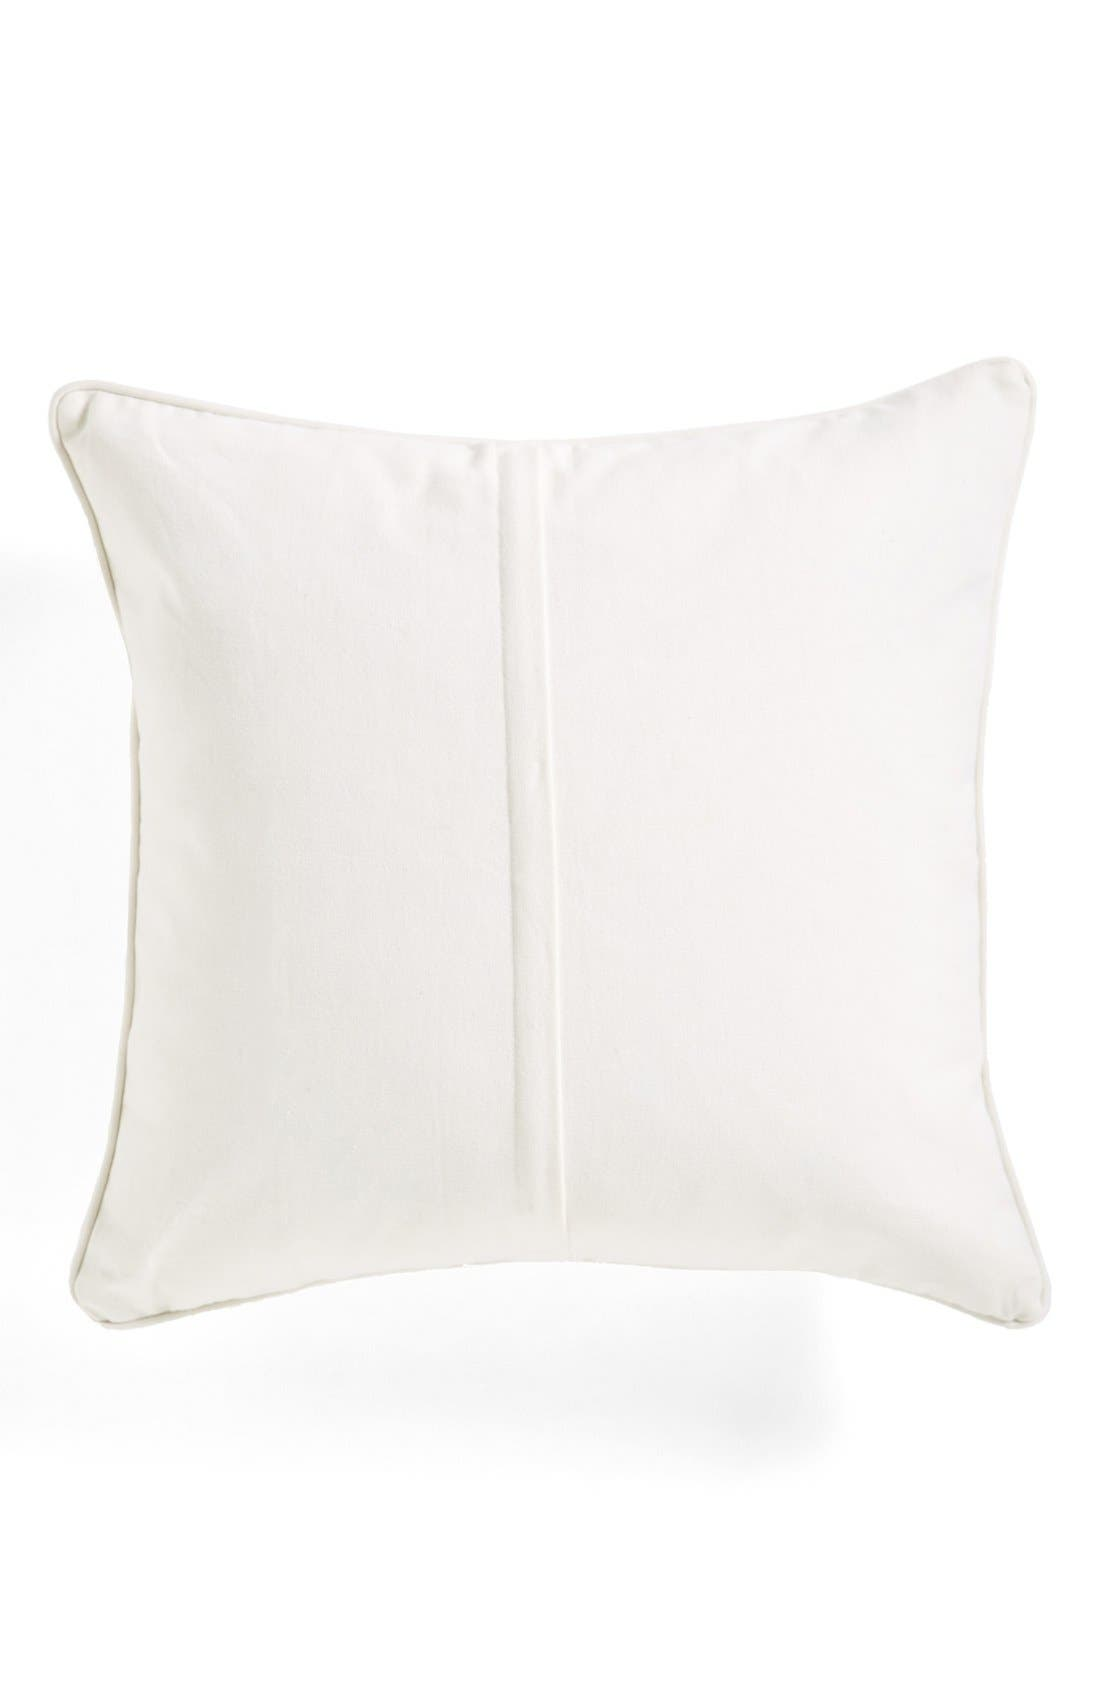 Alternate Image 2  - Levtex 'Fun and Games' Square Pillow